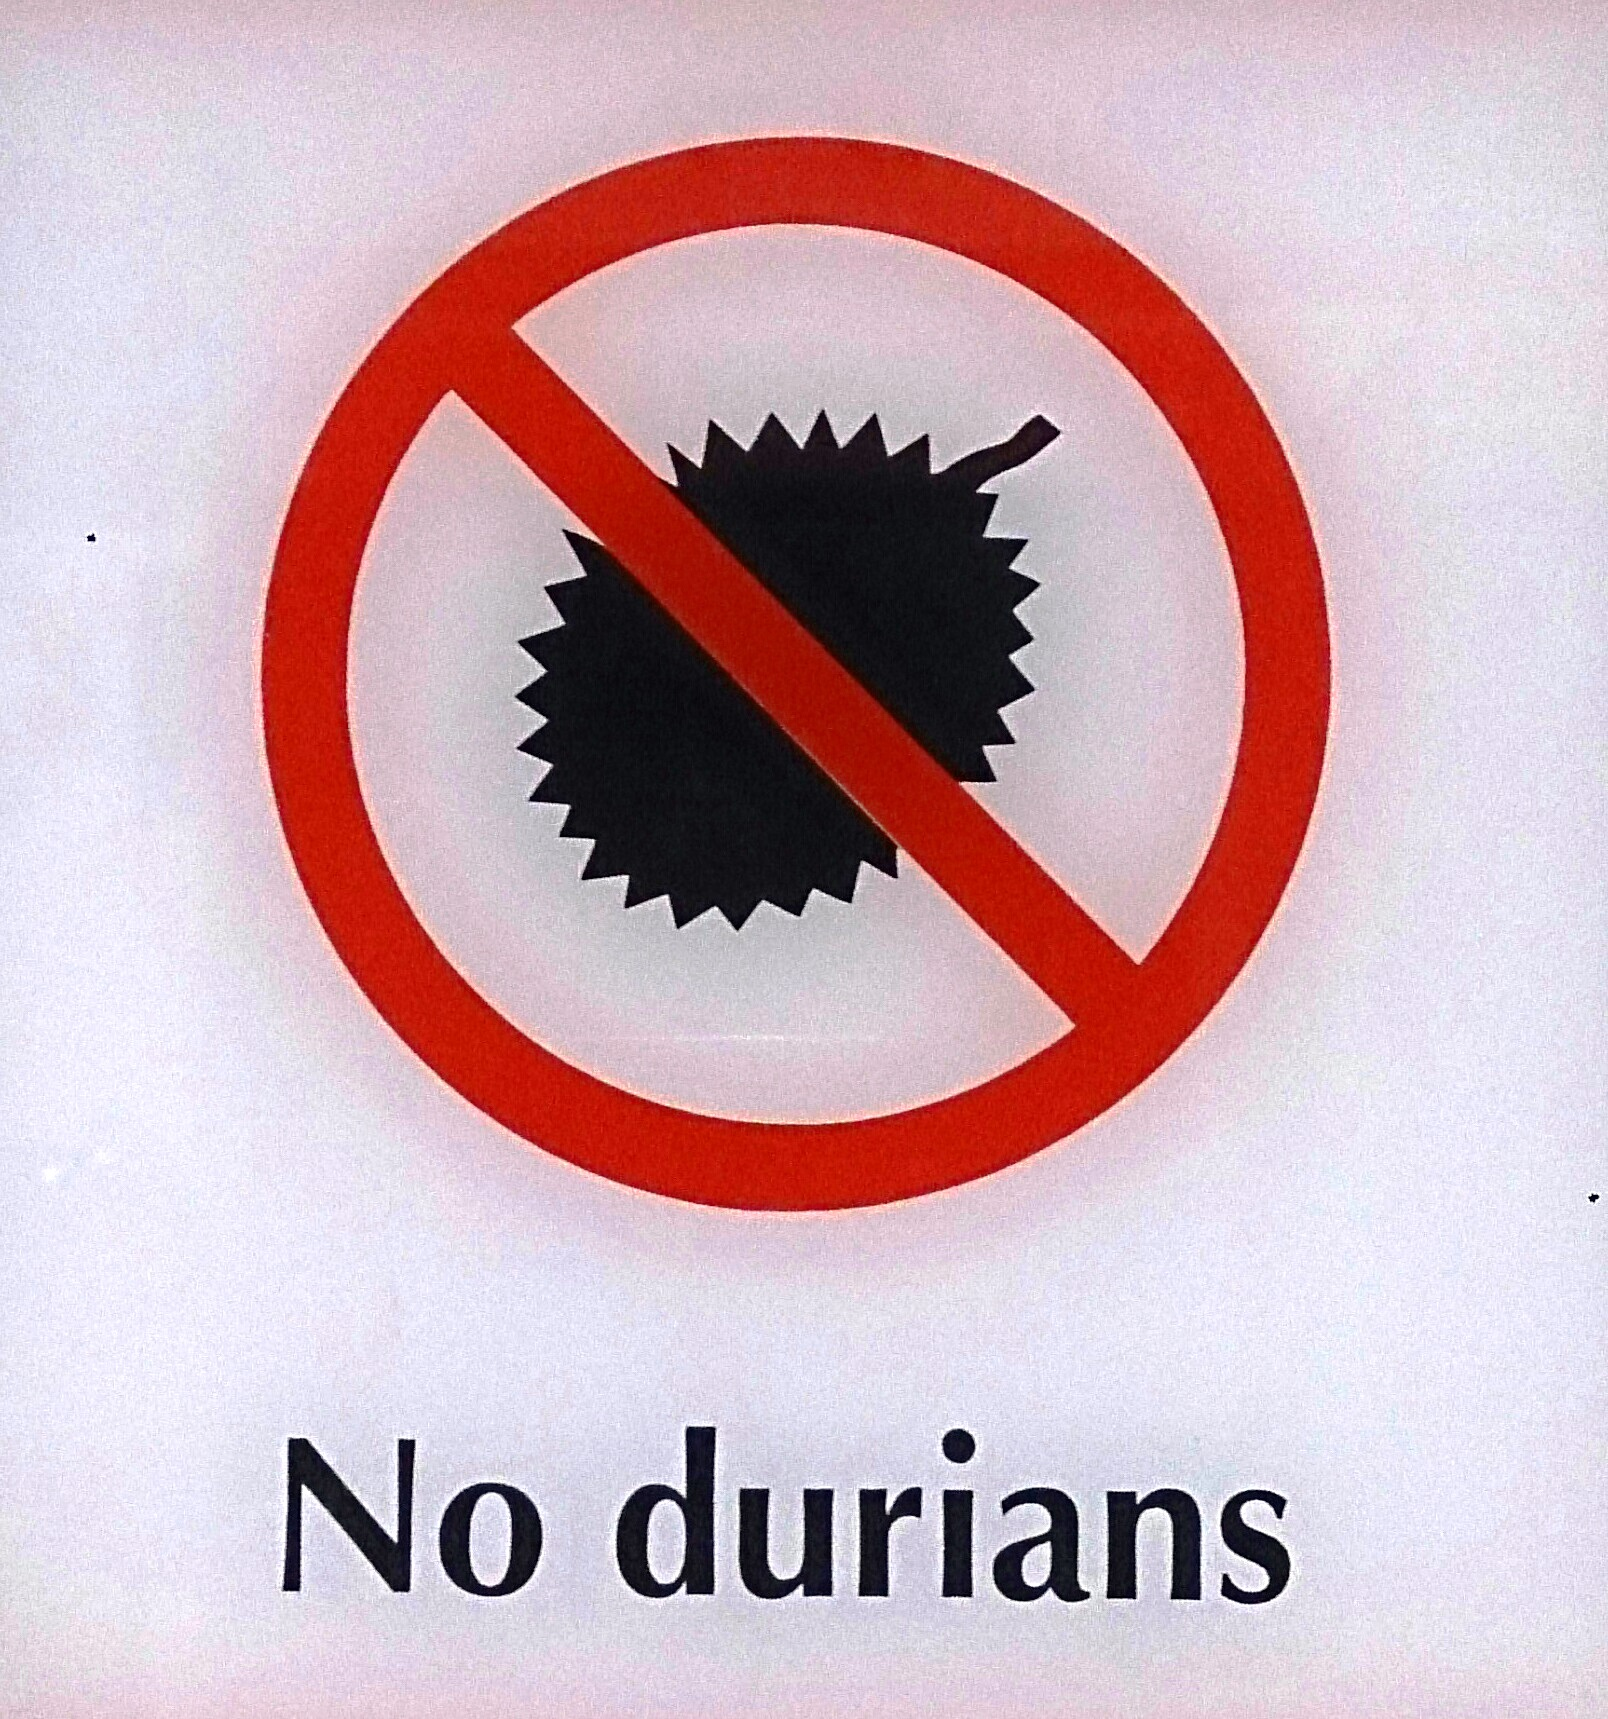 File:No durians sign.jpg - Wikimedia Commons